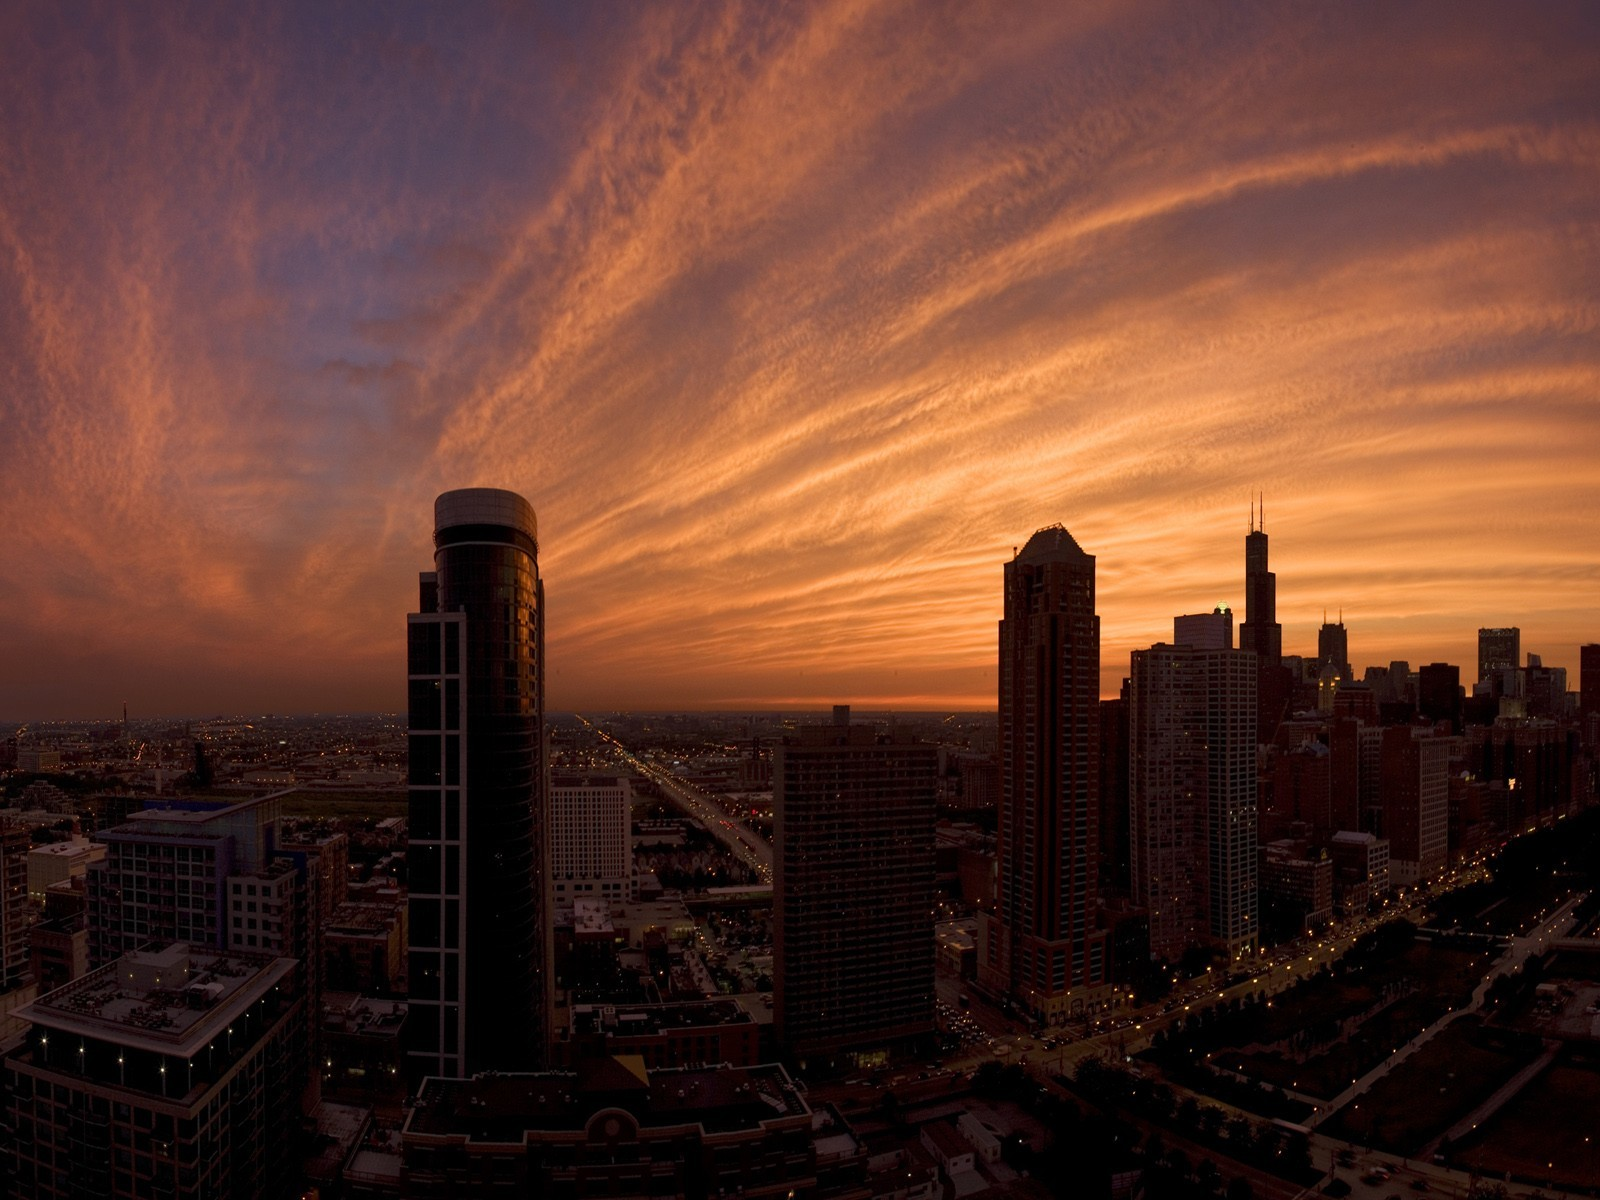 sunset clouds Skyscrapers buildings HD Wallpaper